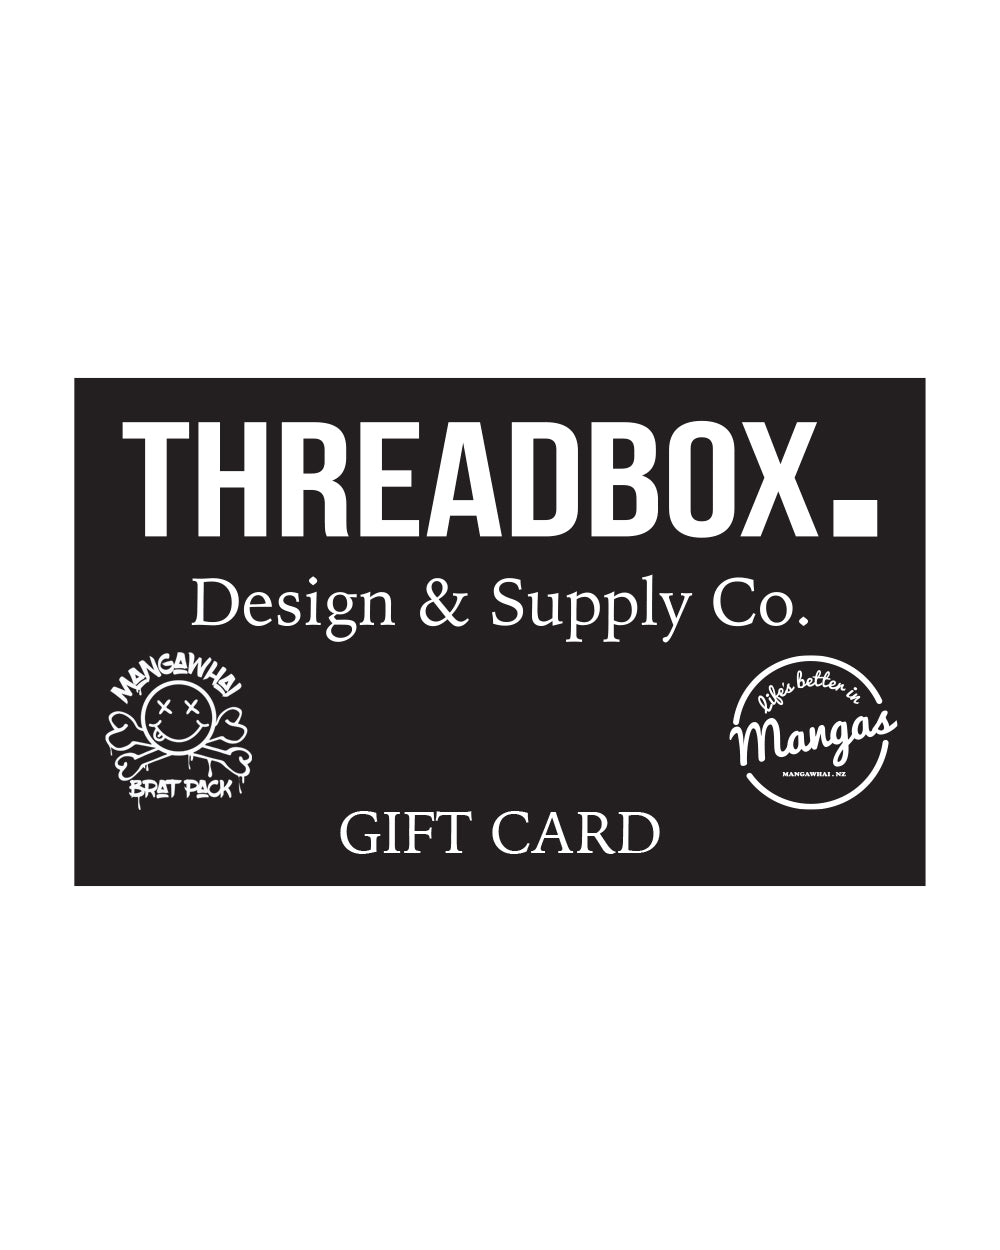 Gift Card - Threadbox